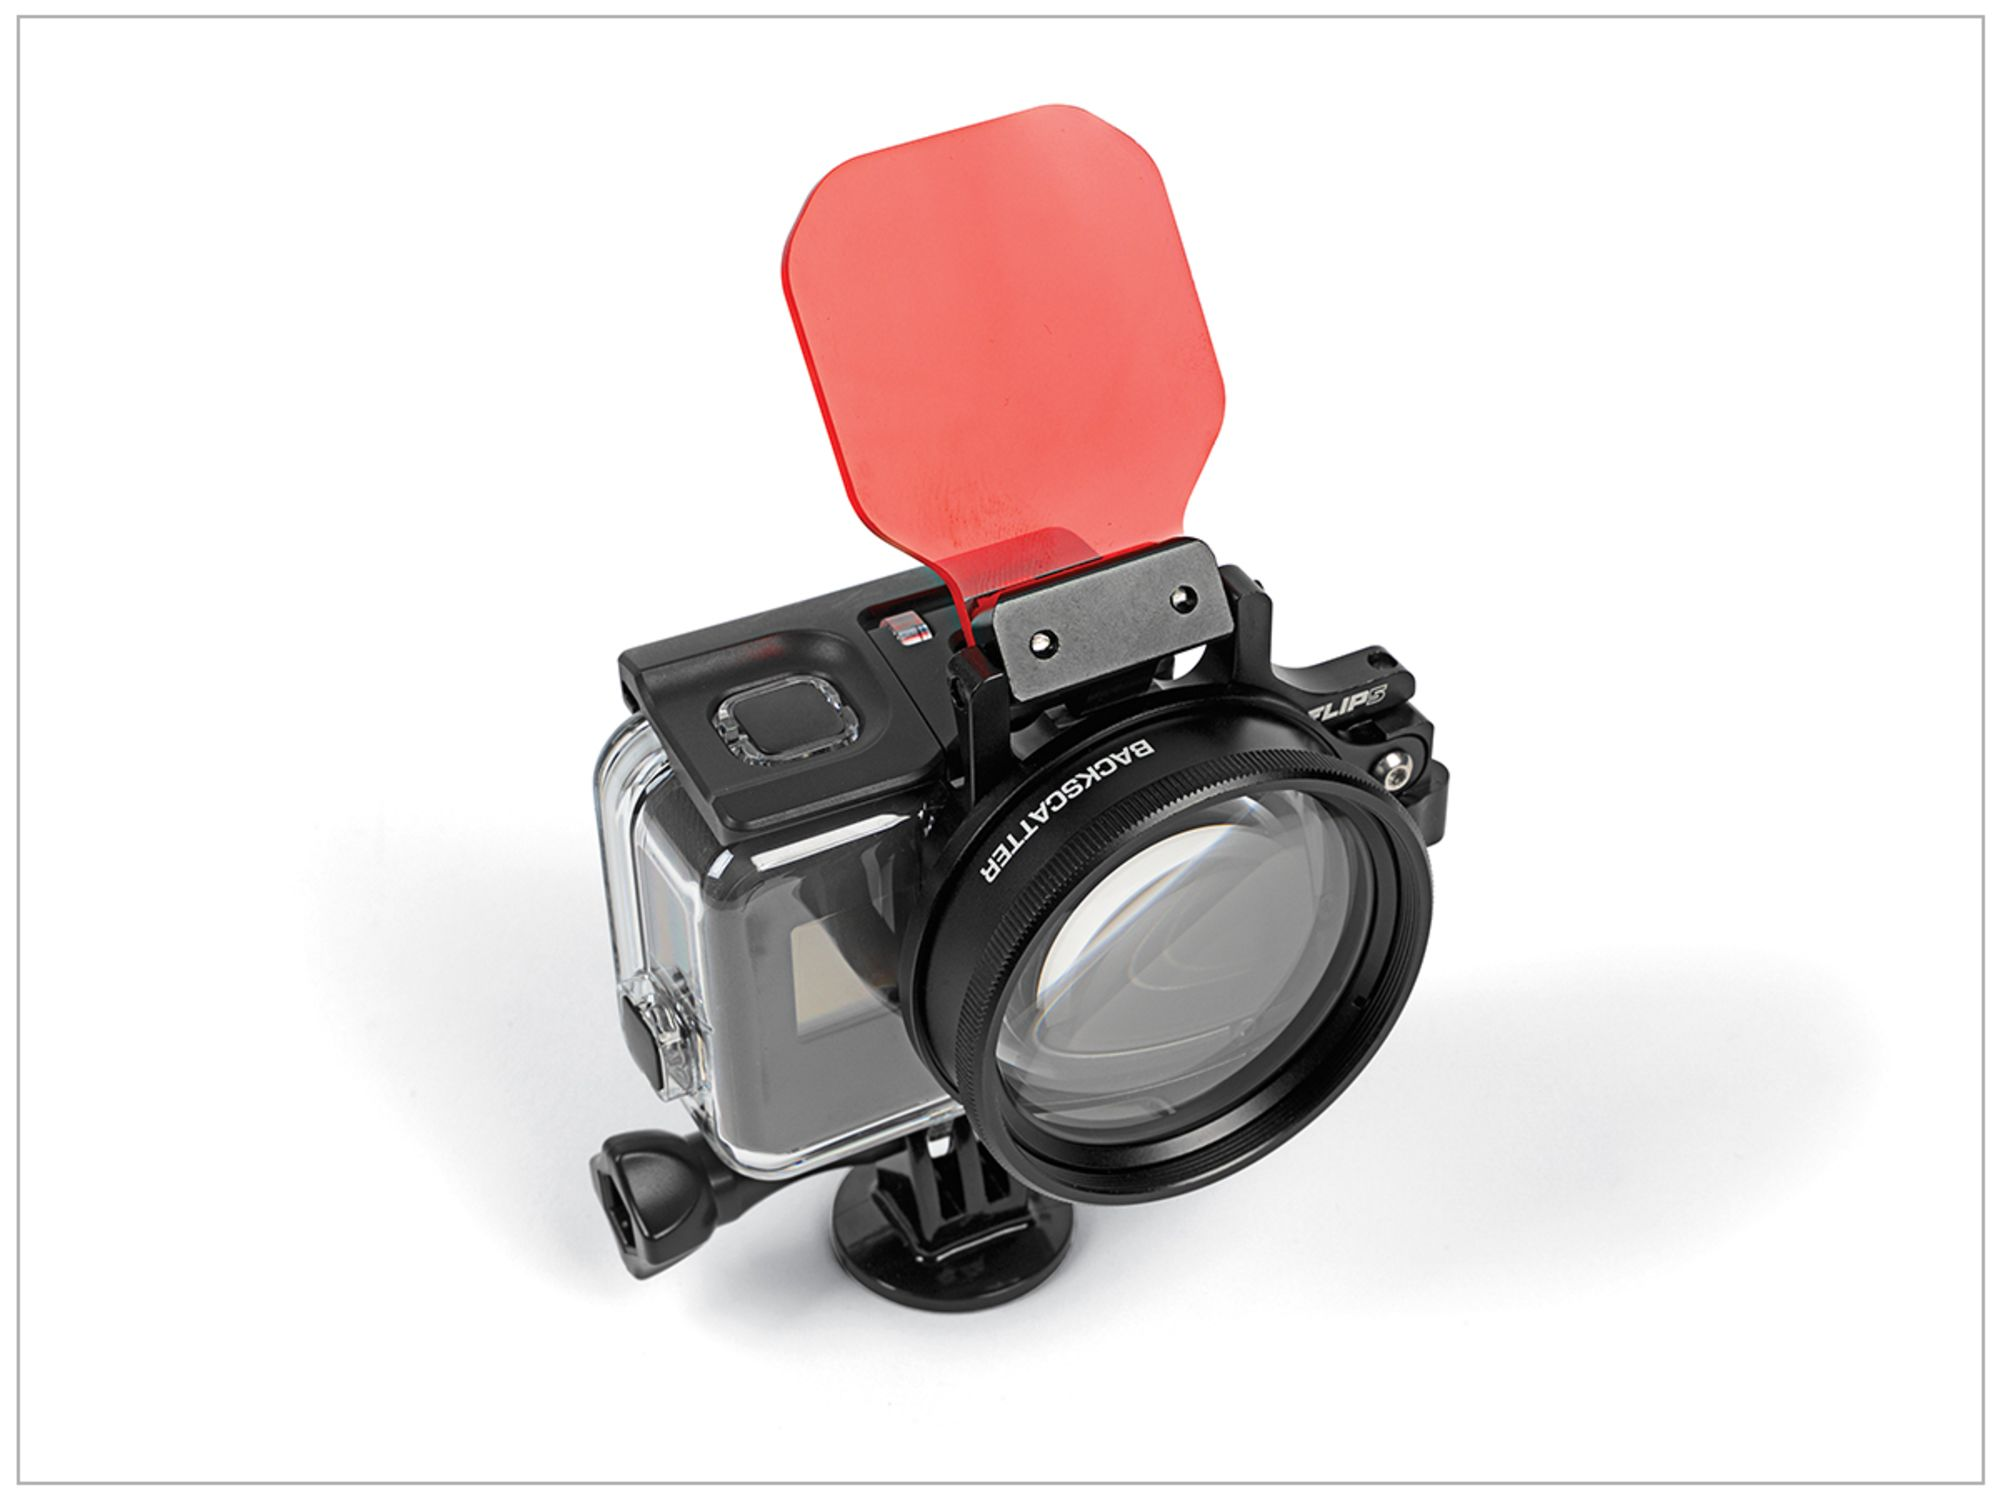 The Best Underwater Camera Accessories and Lights of 2017